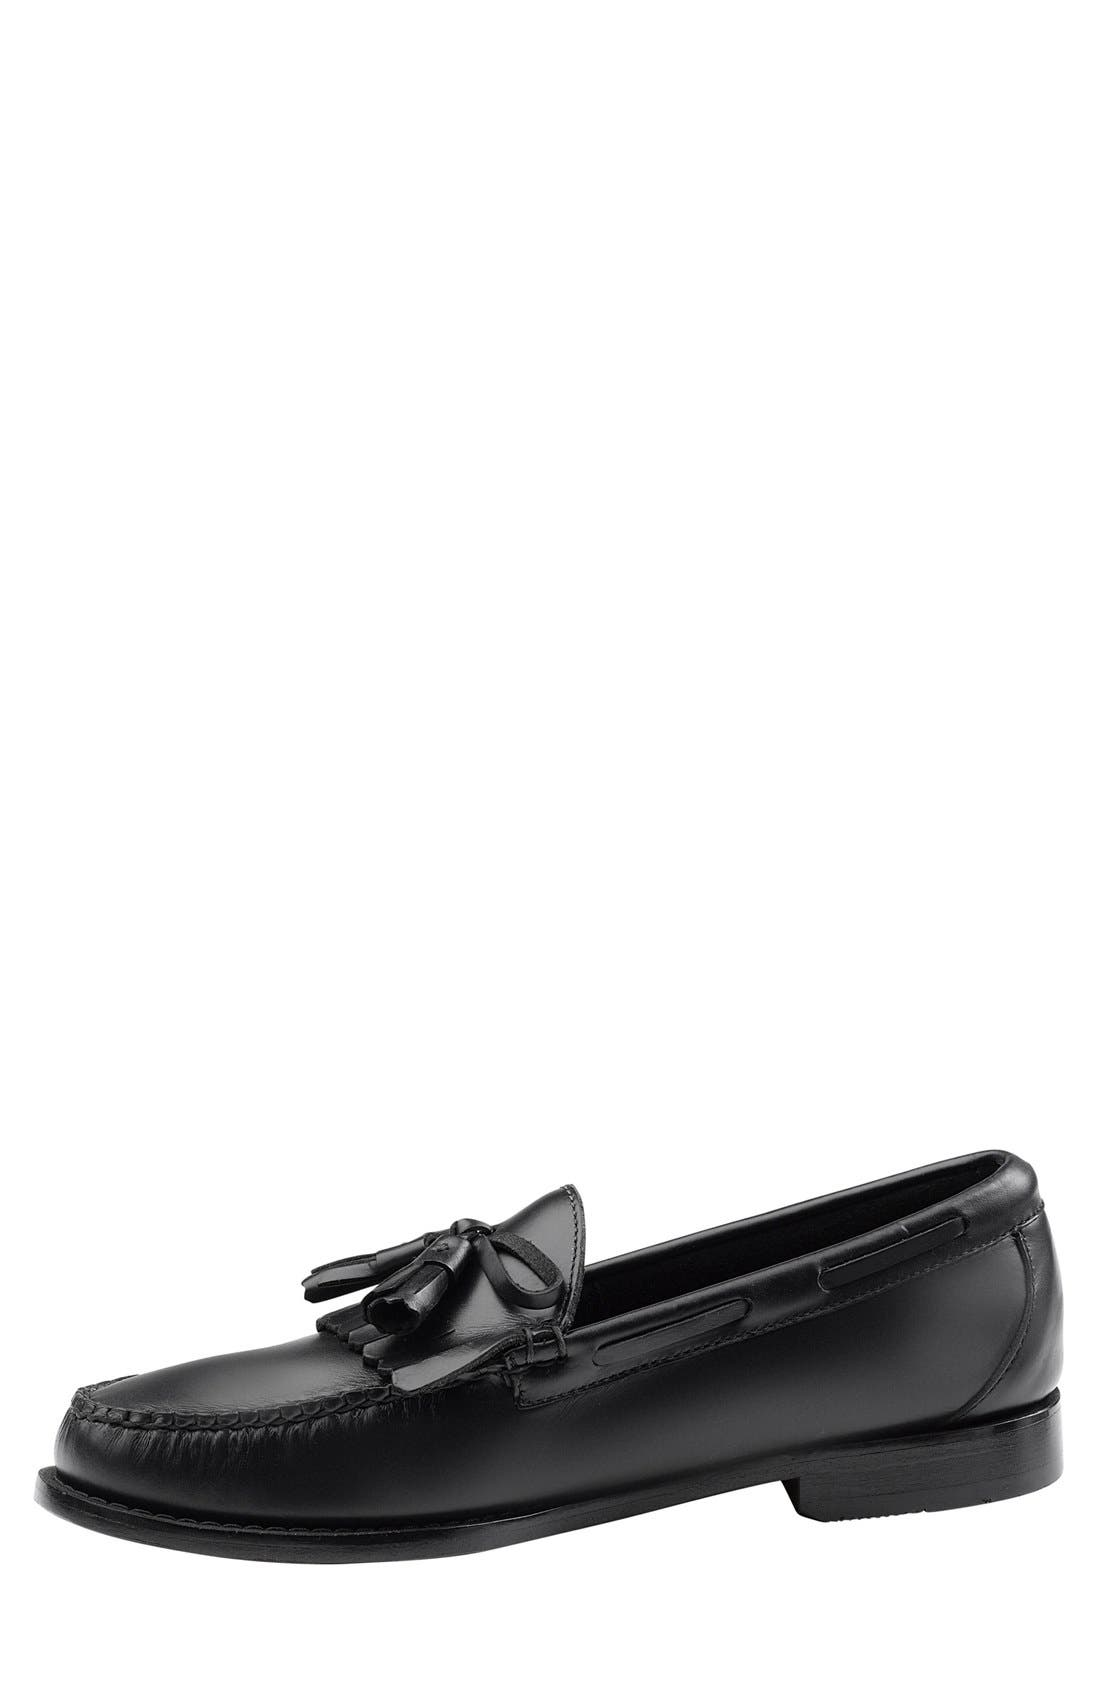 'Lawrence' Tassel Loafer,                             Alternate thumbnail 4, color,